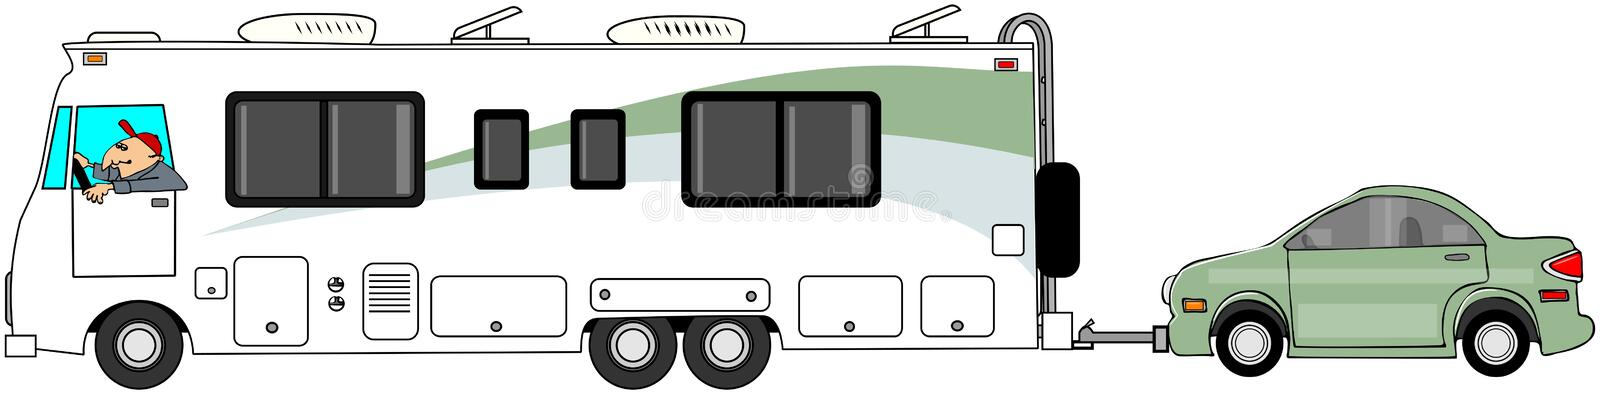 Download Motorhome towing a car stock illustration. Illustration of male - 43426128